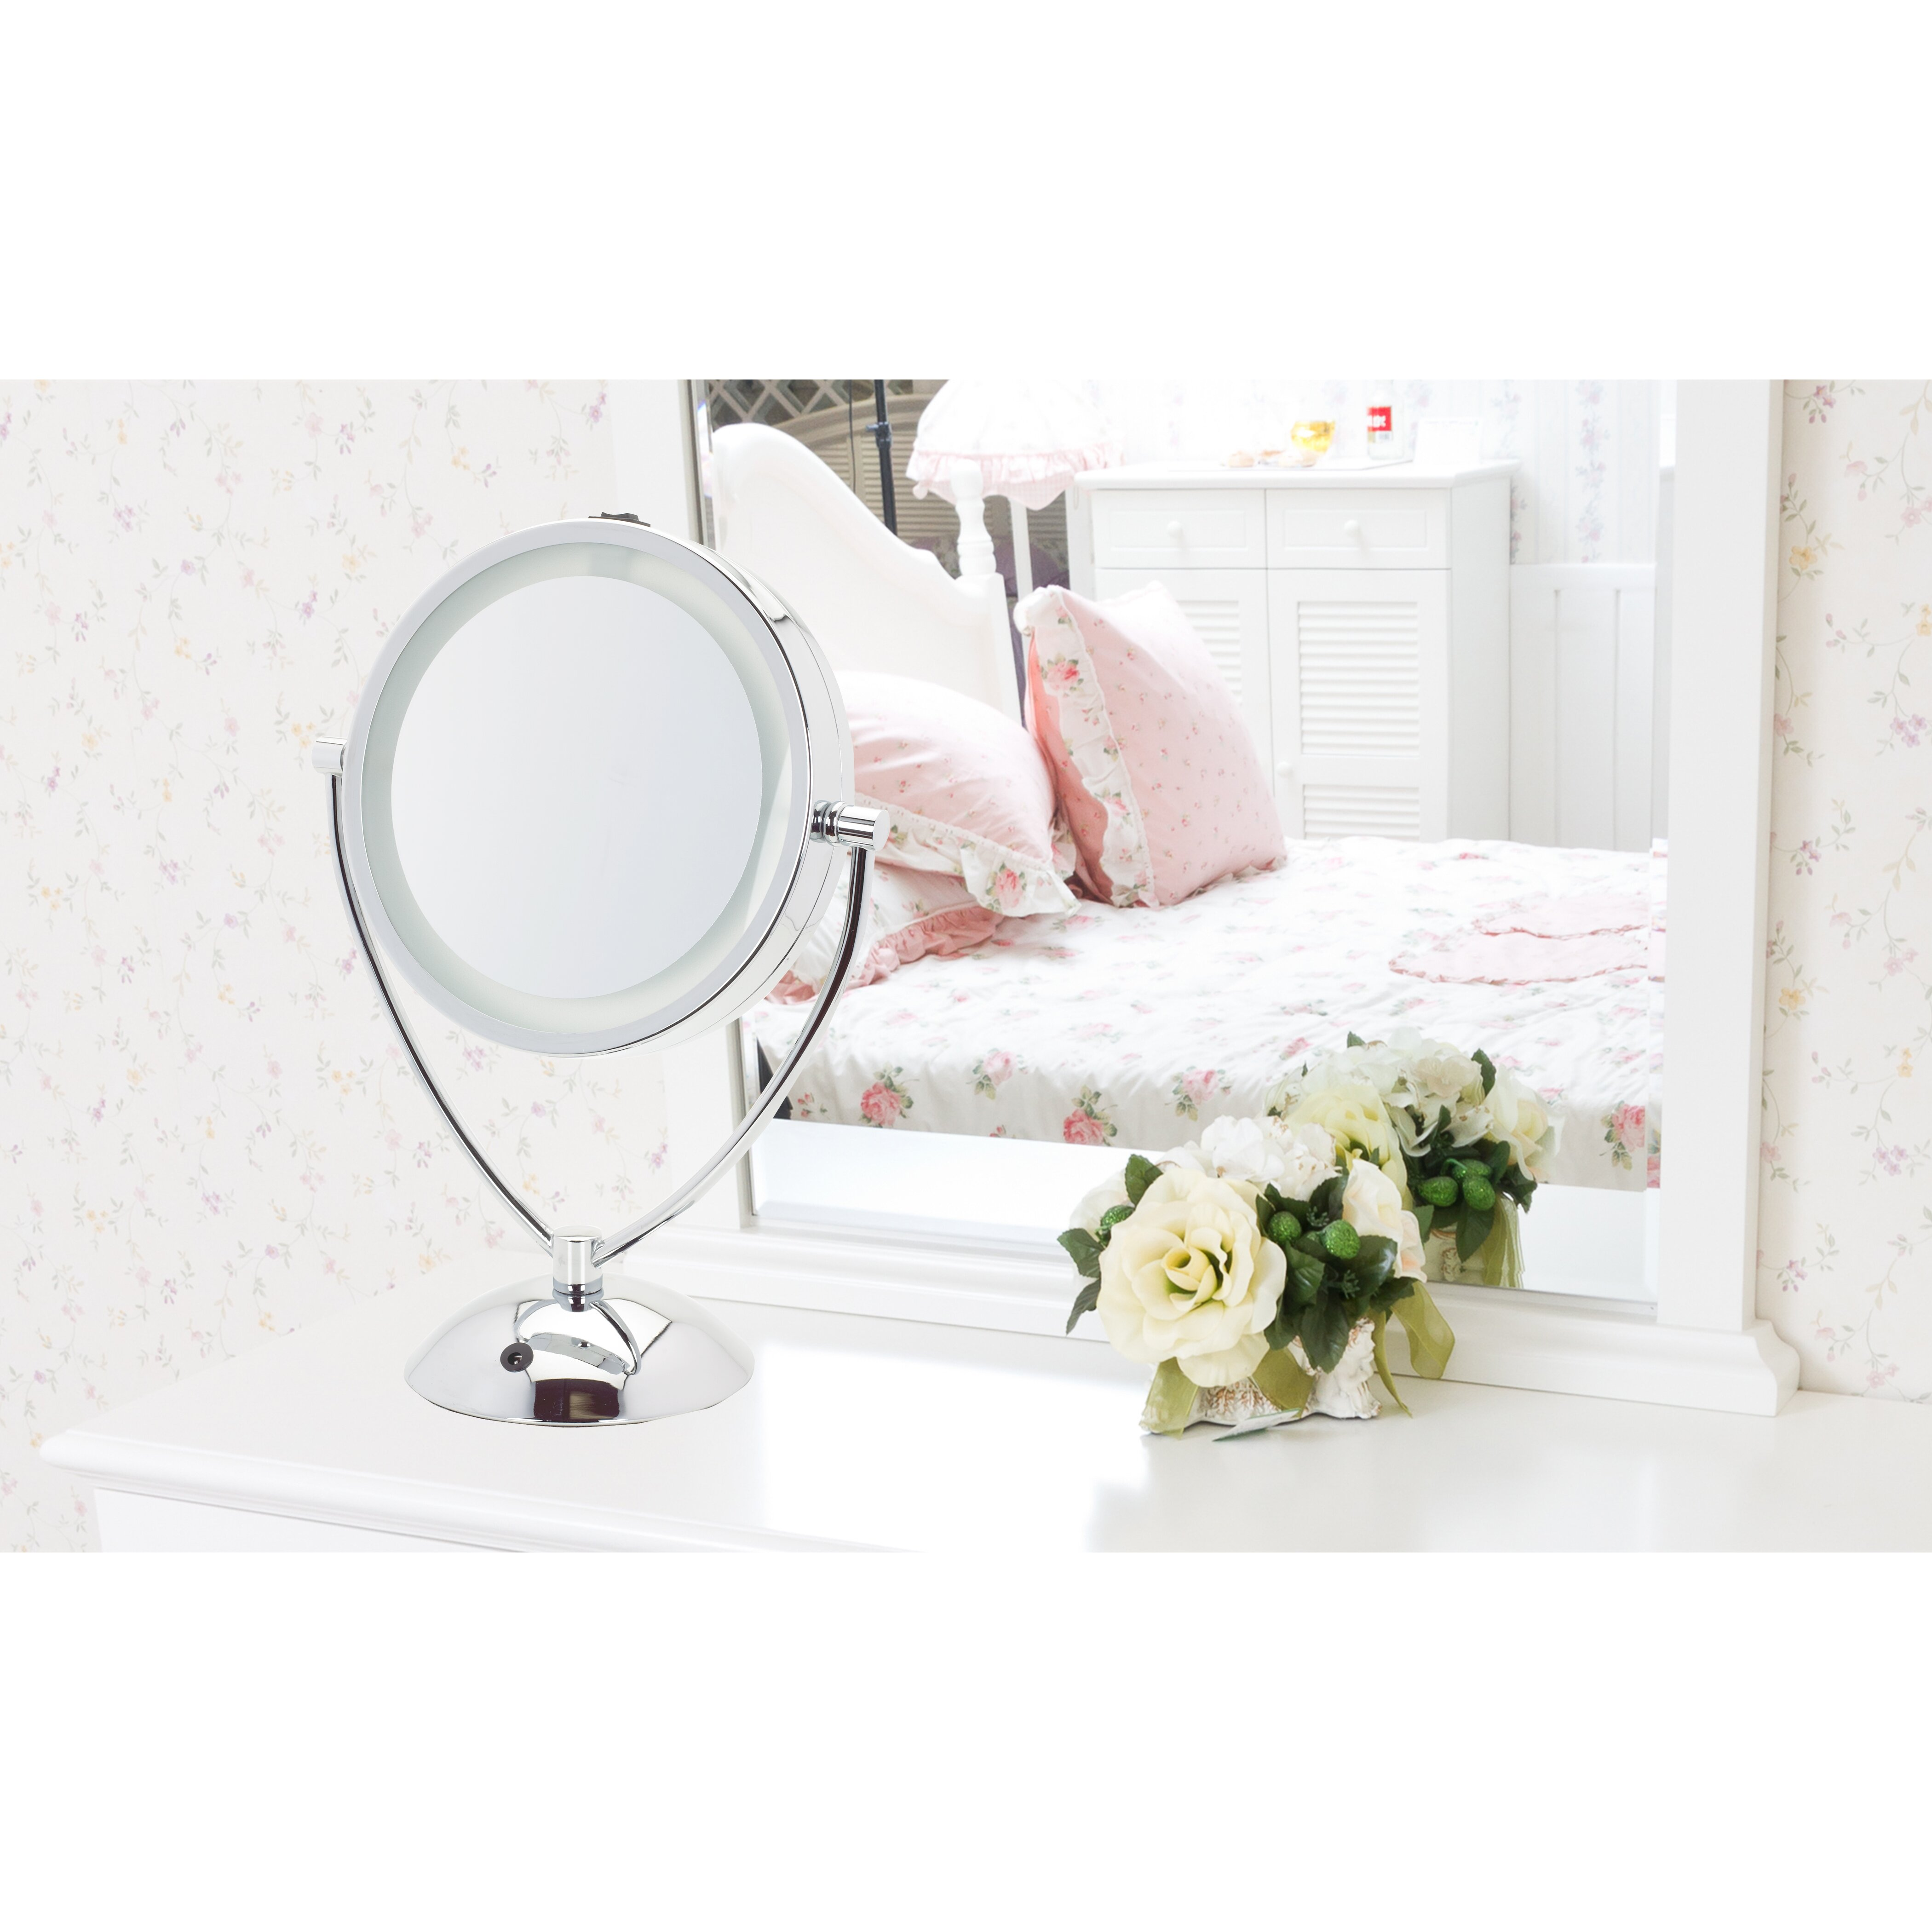 Danielle Creations Dual Level Led Vanity Lighted Mirror